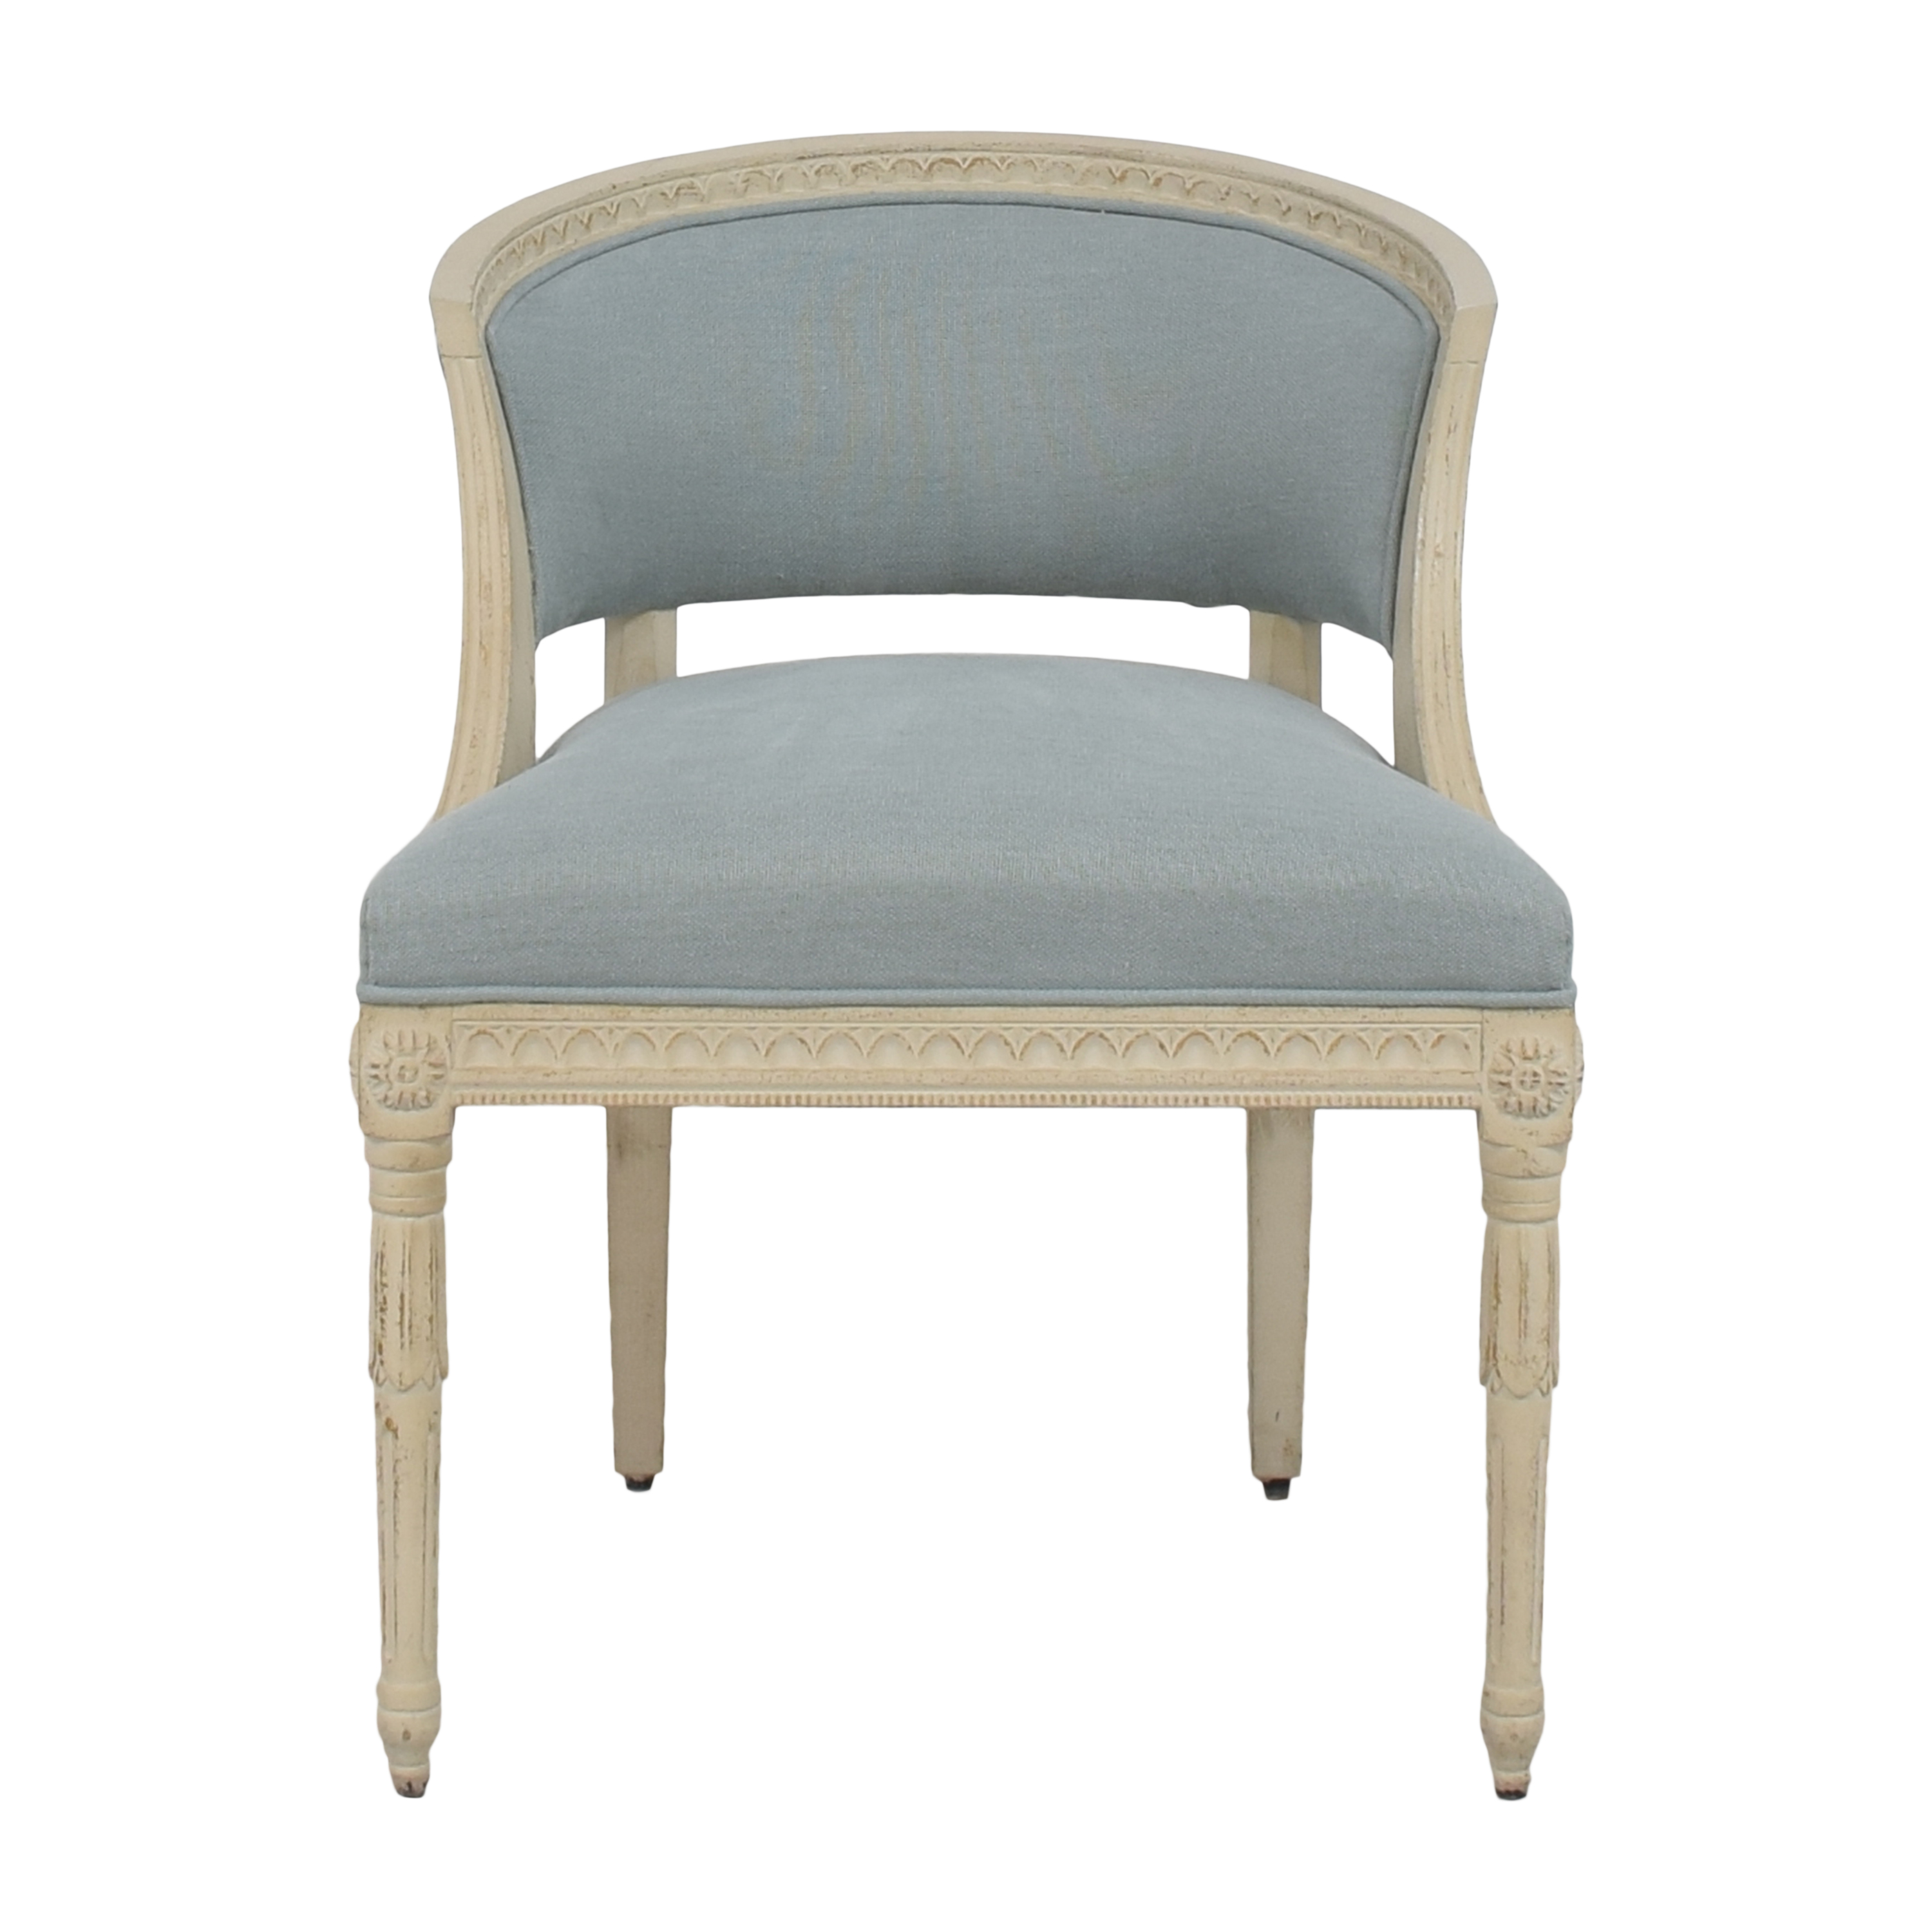 shop One Kings Lane Upholstered Accent Chair One Kings Lane Accent Chairs